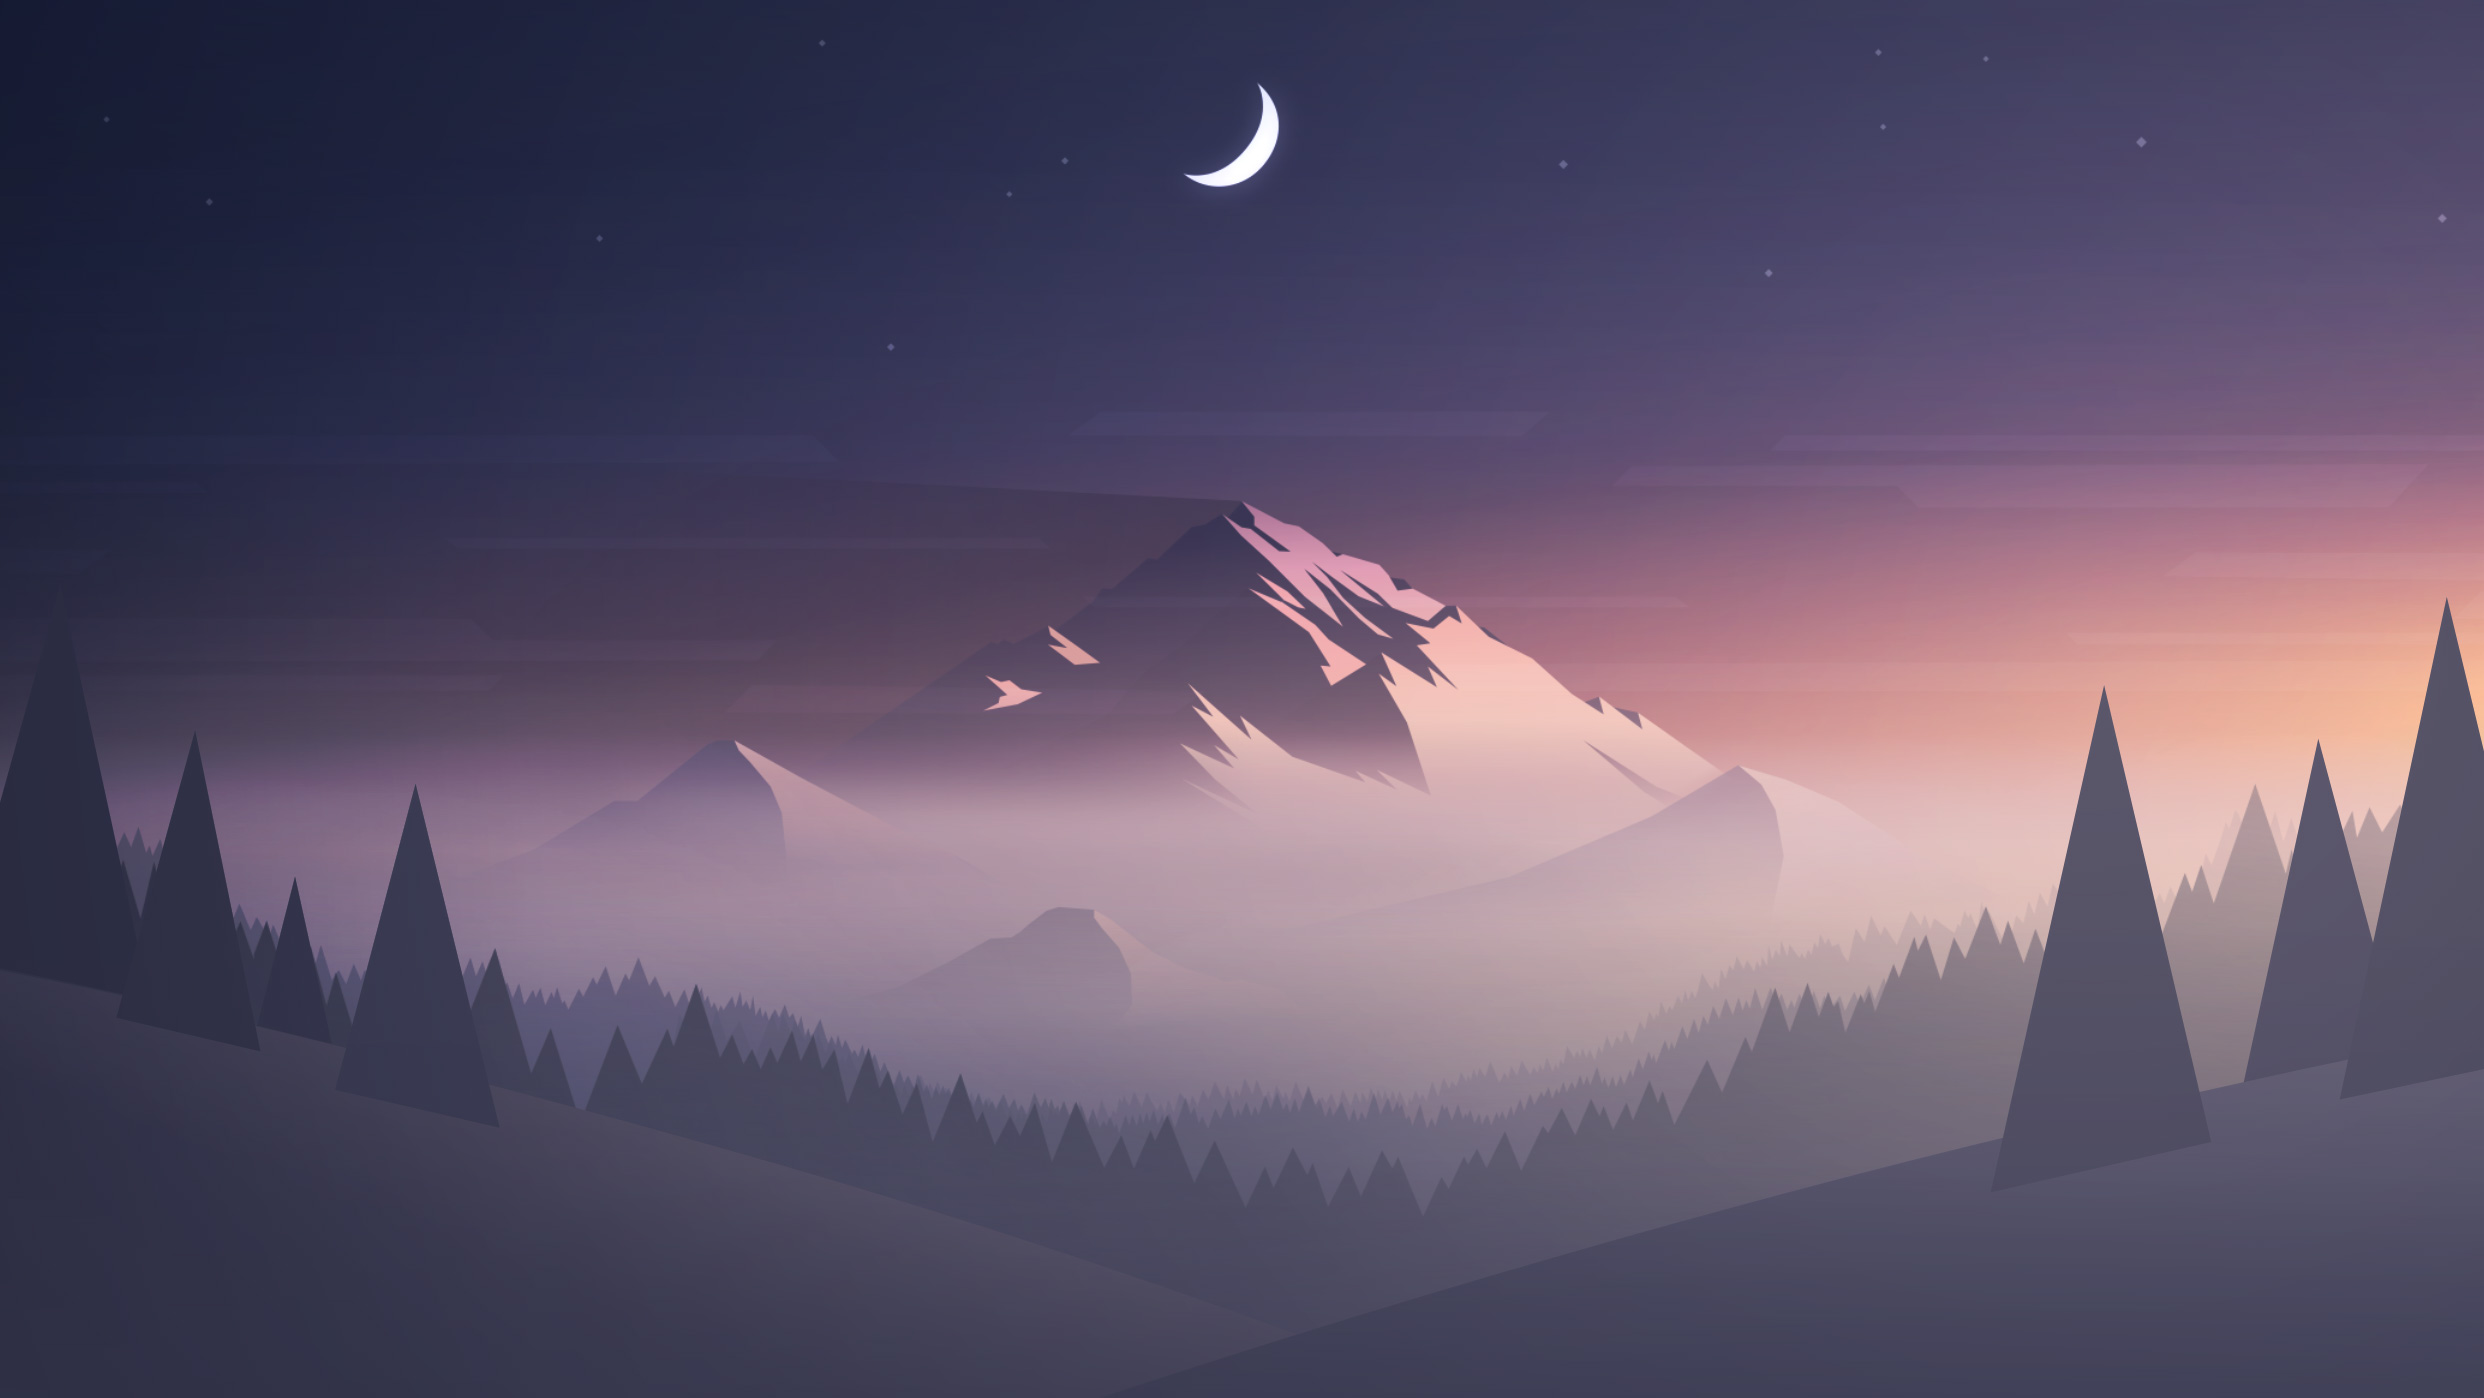 Mountains Moon Trees Minimalism, HD Artist, 4k Wallpapers